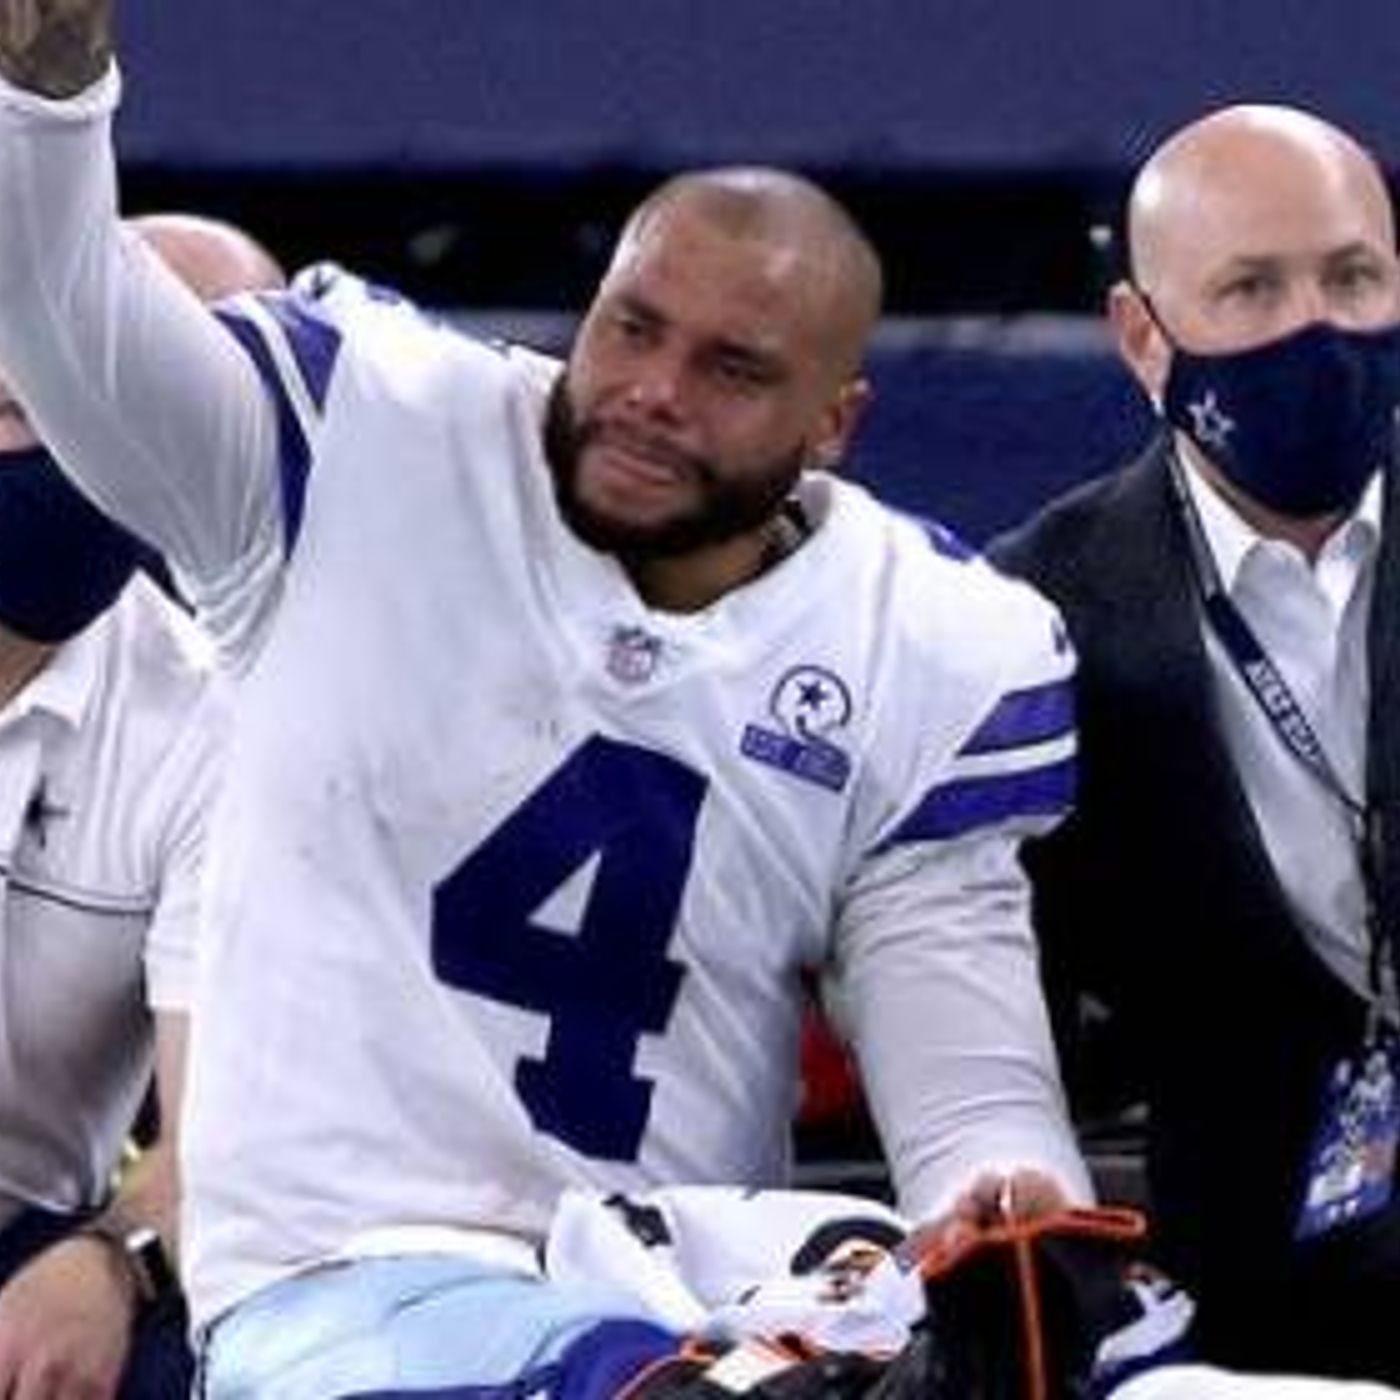 About Dak Prescott's Ankle Injury and the NBA Virtual Combine